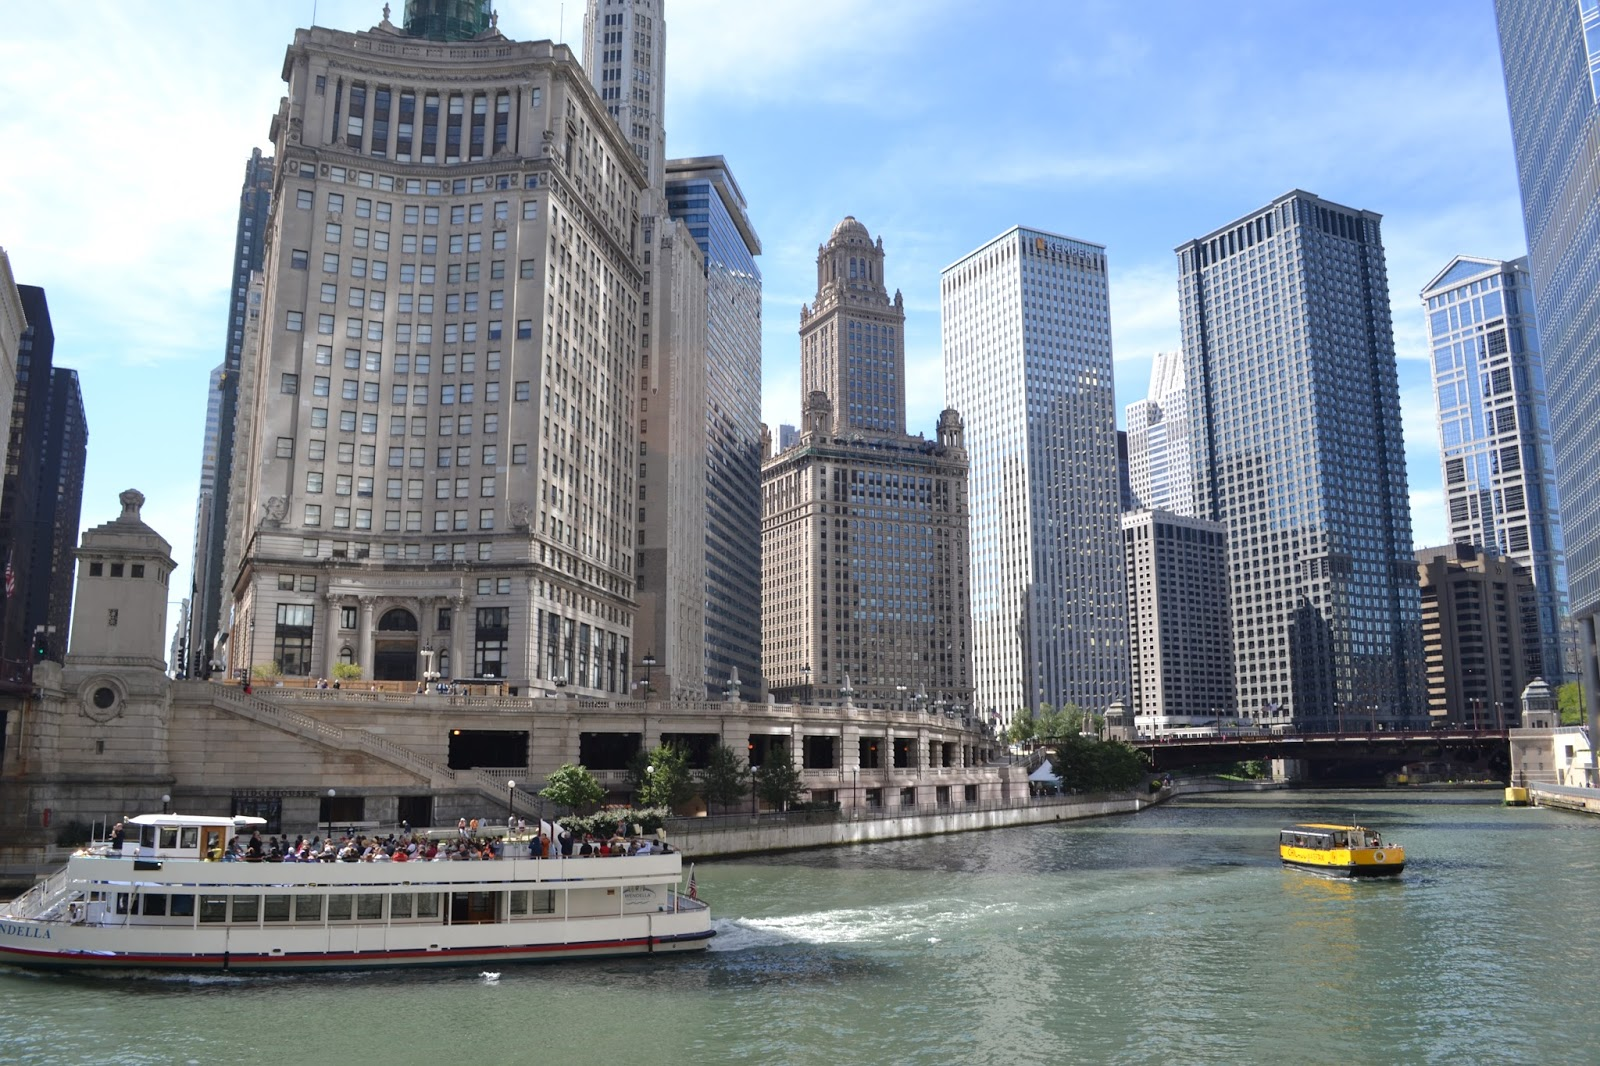 Peachy Keen: A Travel Guide to Chicago! Restaurants, things to see, museums, and more!